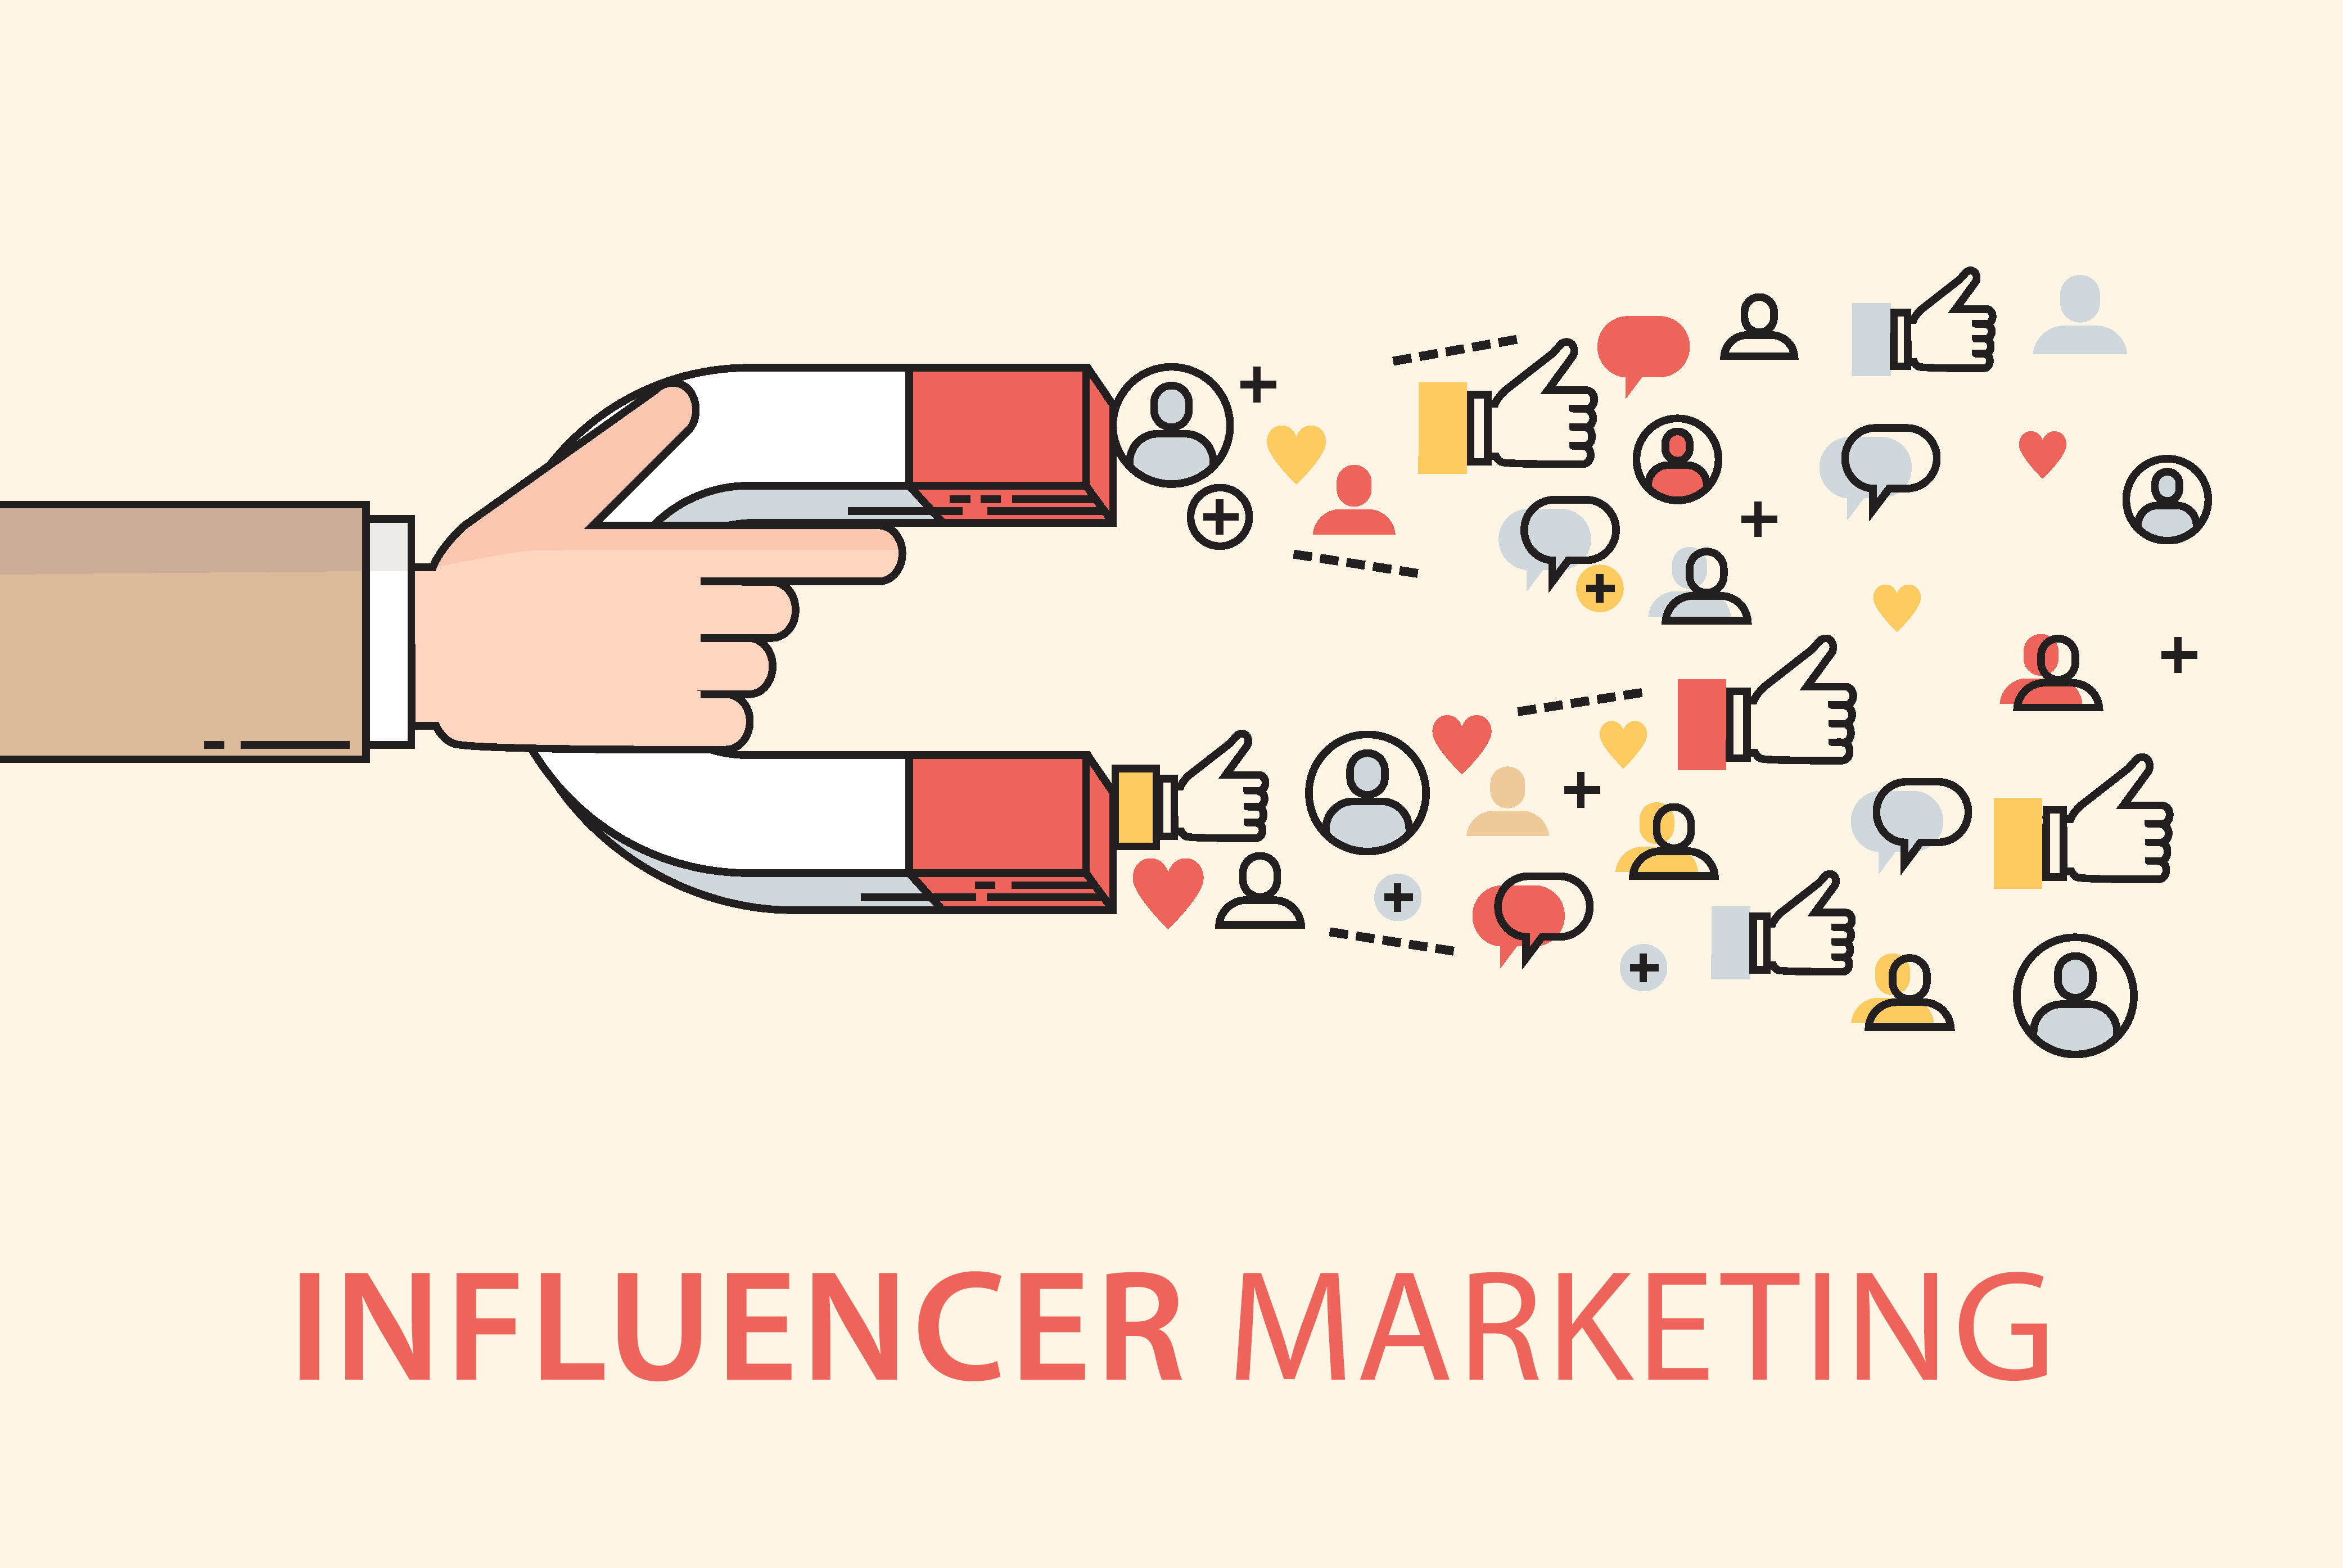 Influencer Marketing: Risks and Rewards